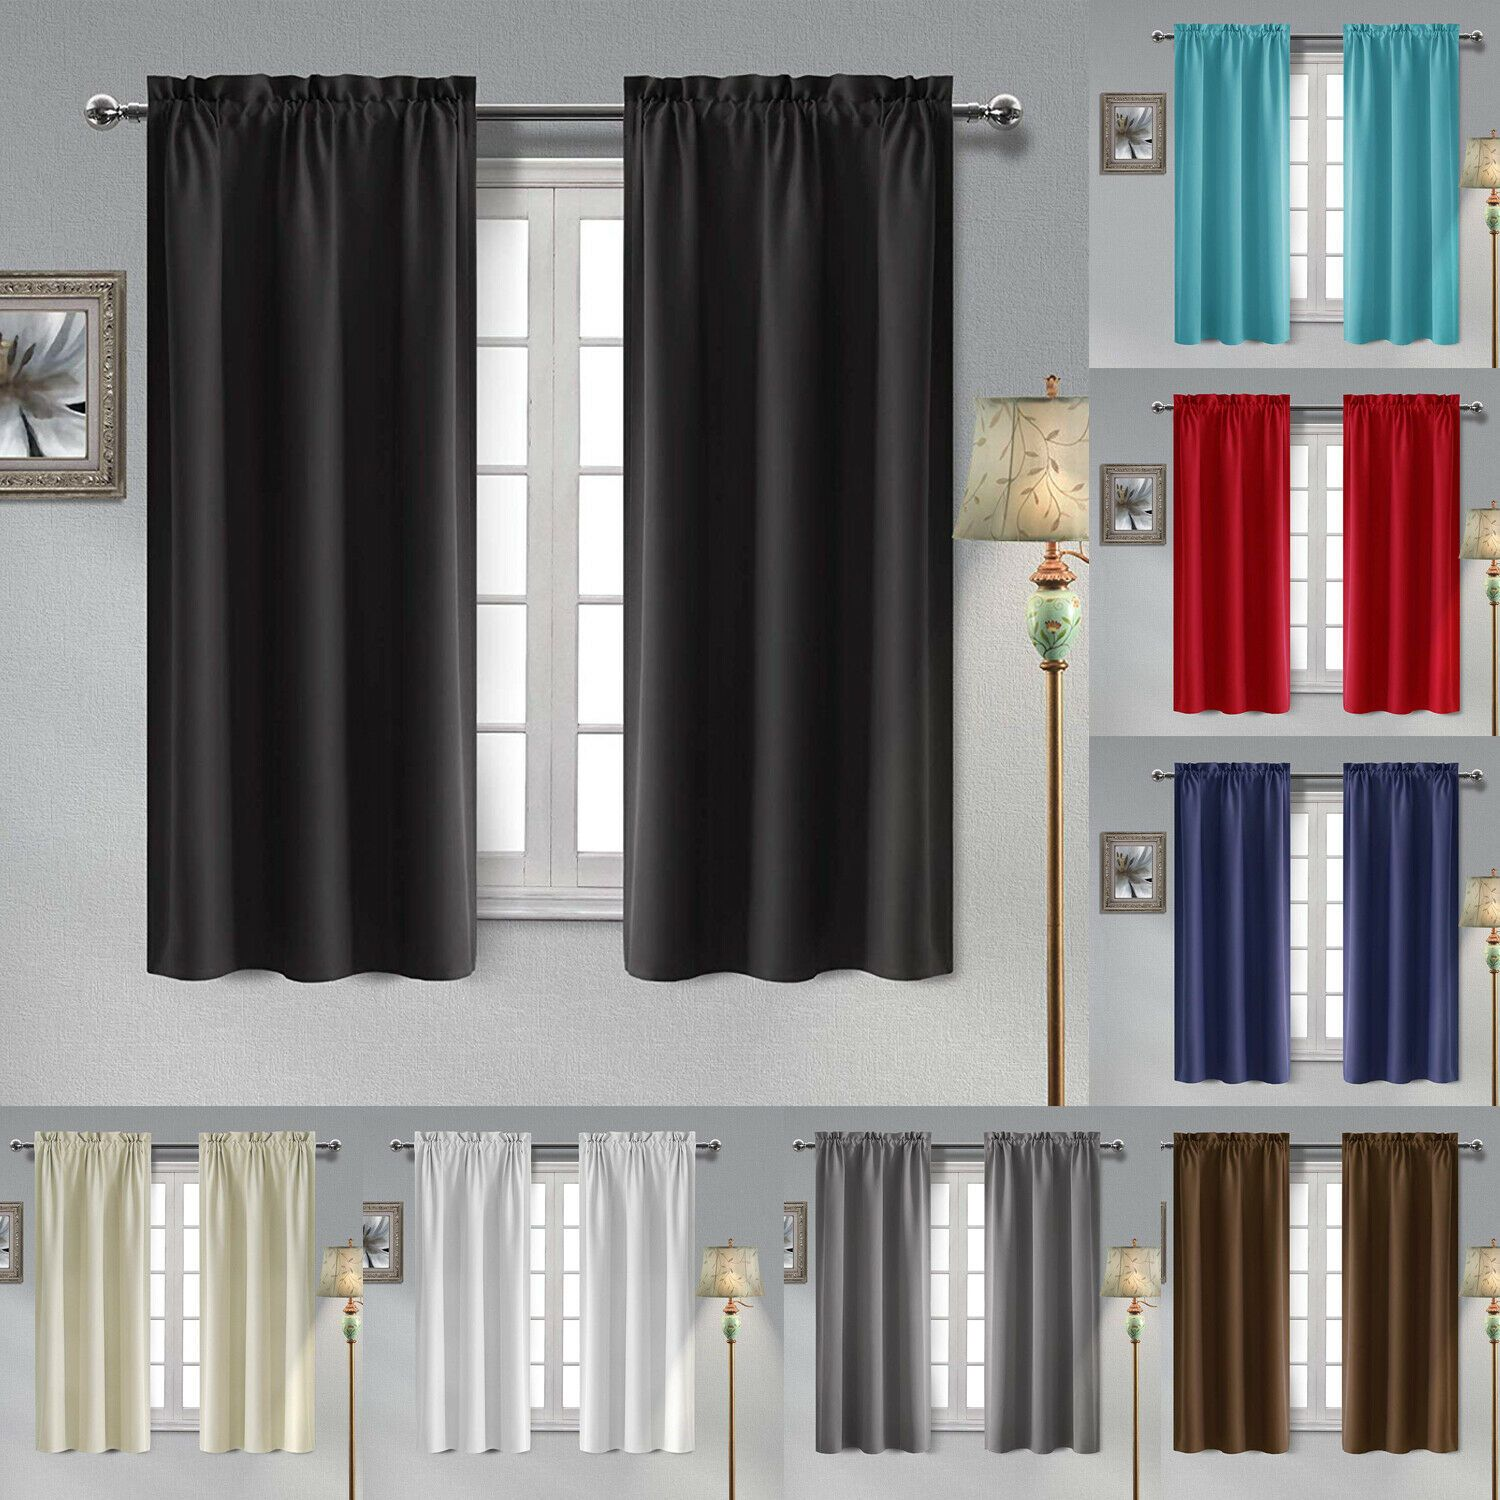 Details About 2 Panels Thermal Insulated Blackout Curtains Room